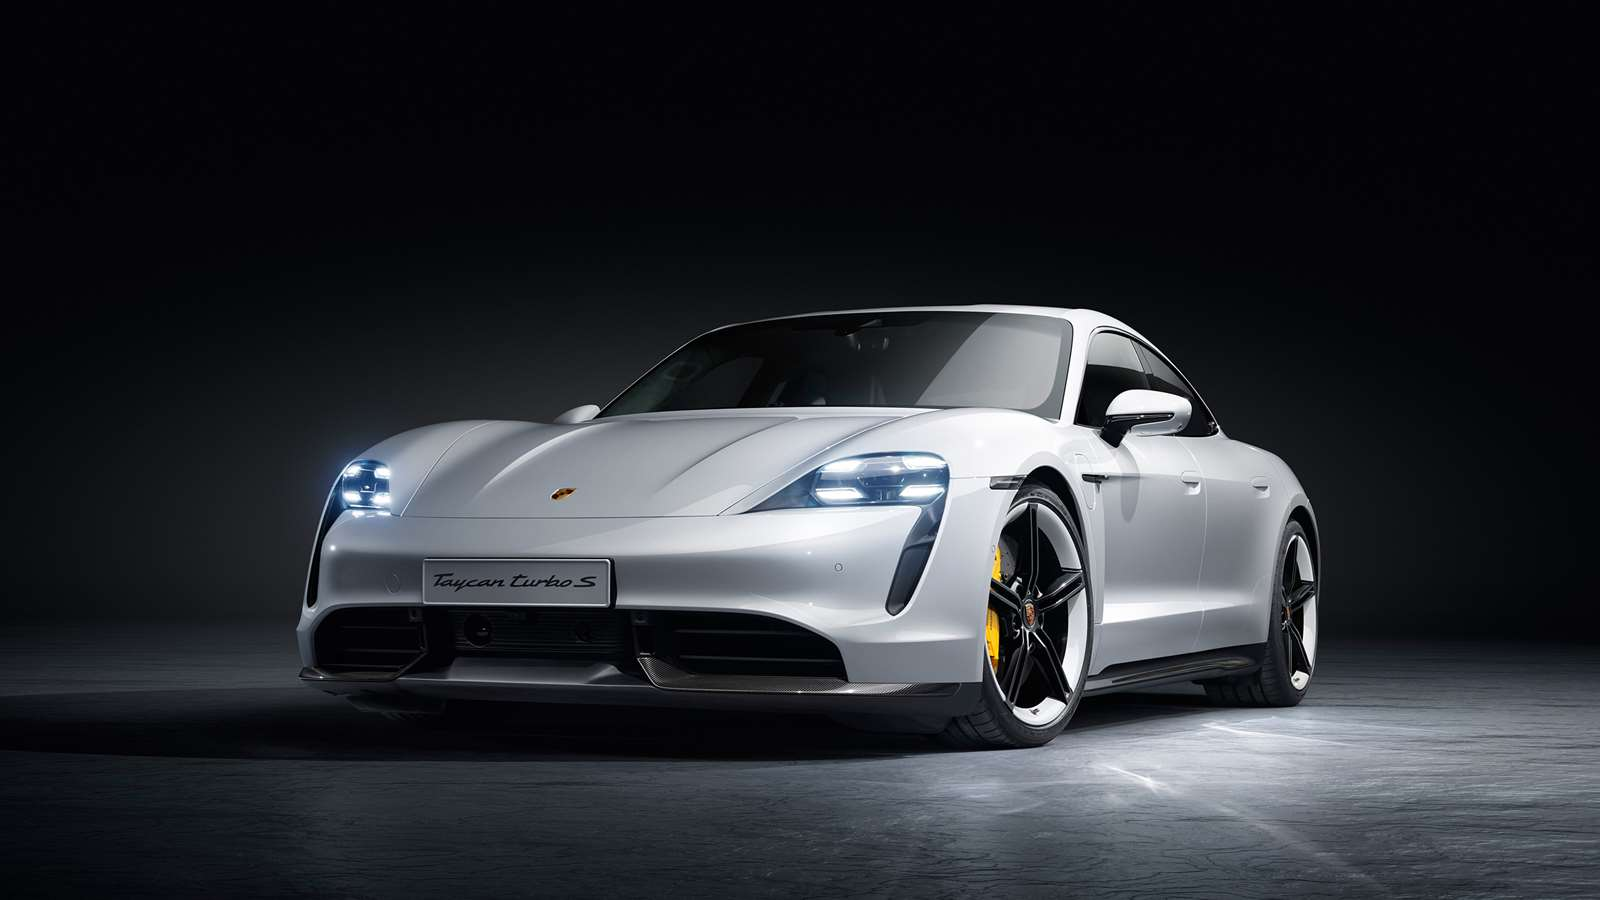 The all-electric Porsche Taycan has arrived